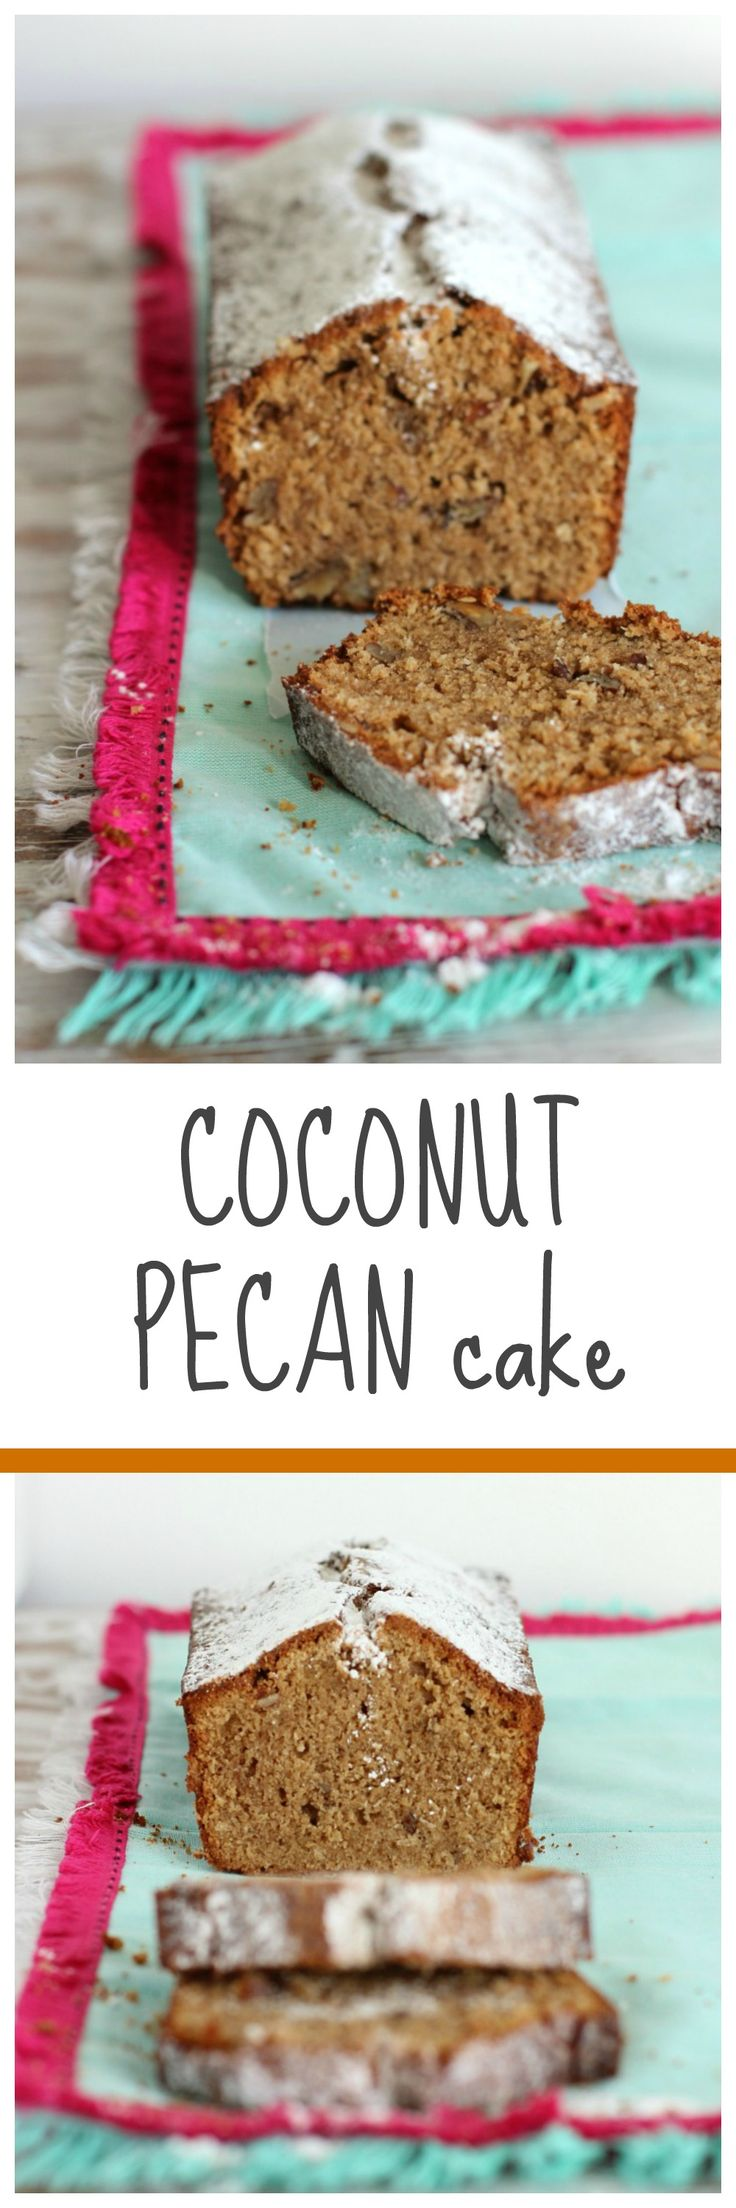 COCONUT PECAN CAKE, easy to make and full of flavor. Coconut and pecans are a perfect match, and this cake has an amazing texture.